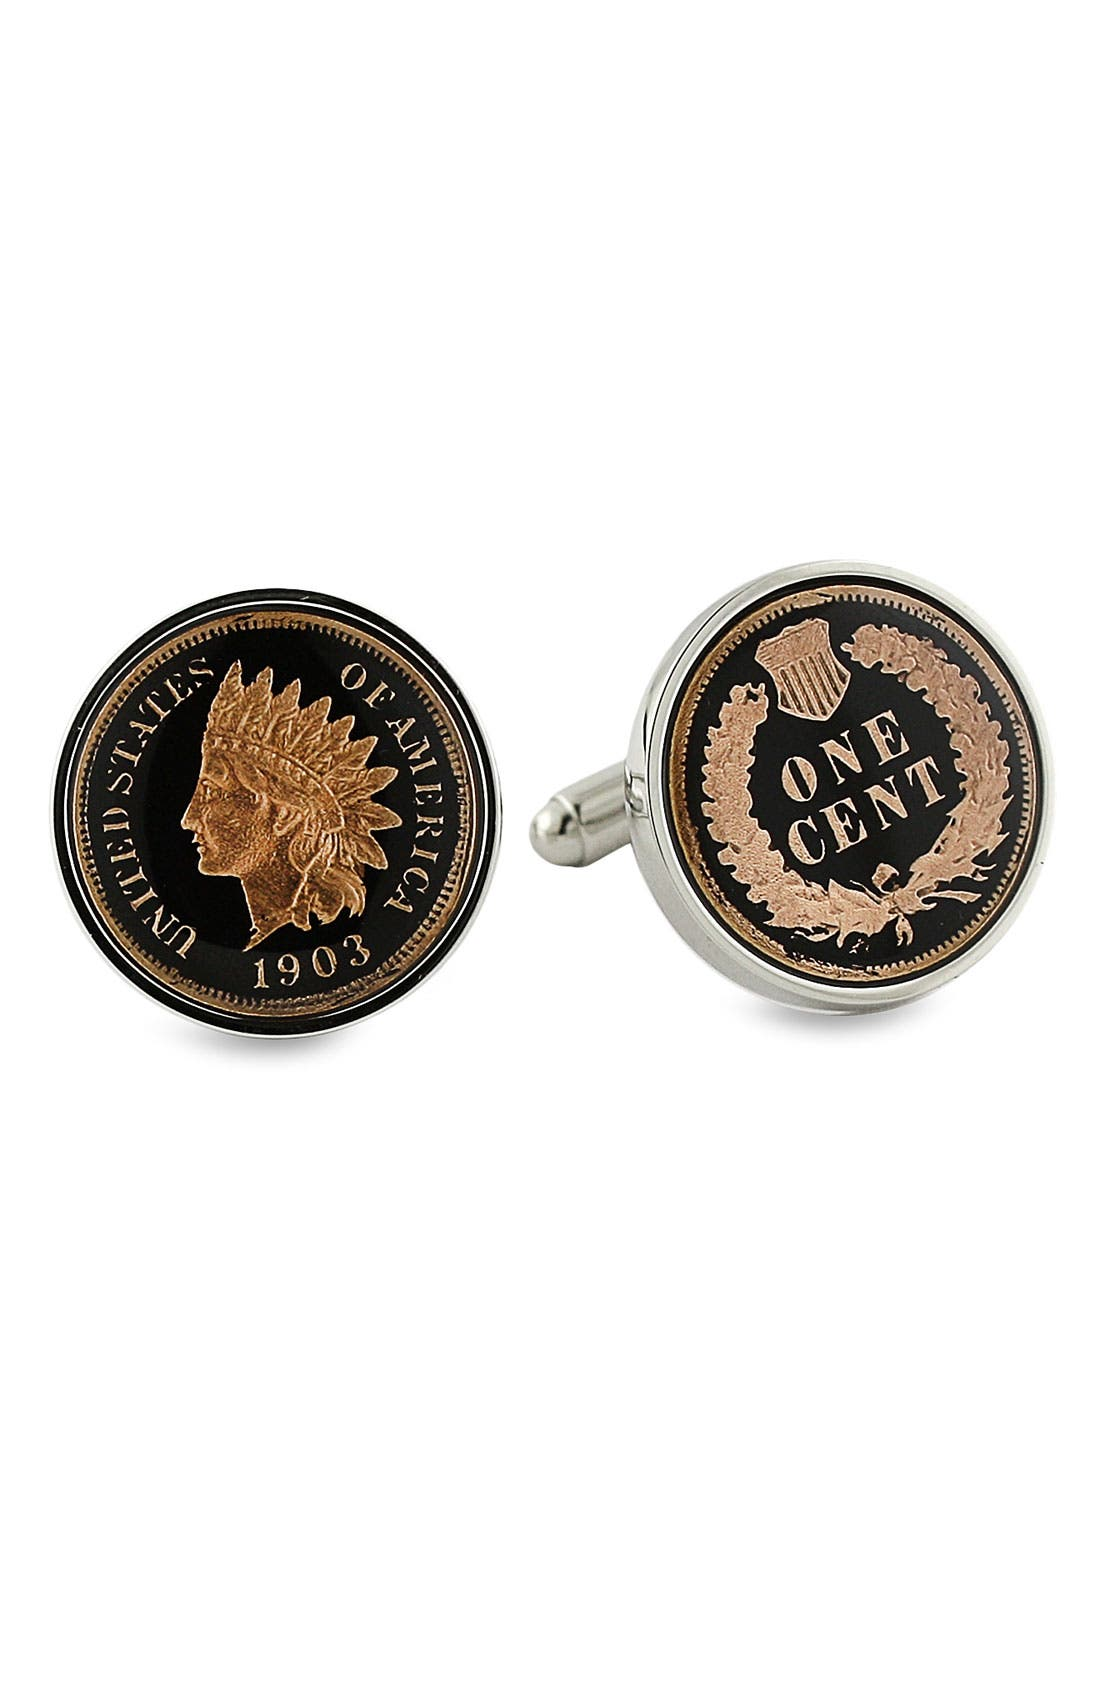 'Collector Coin' Cuff Links,                             Main thumbnail 1, color,                             001